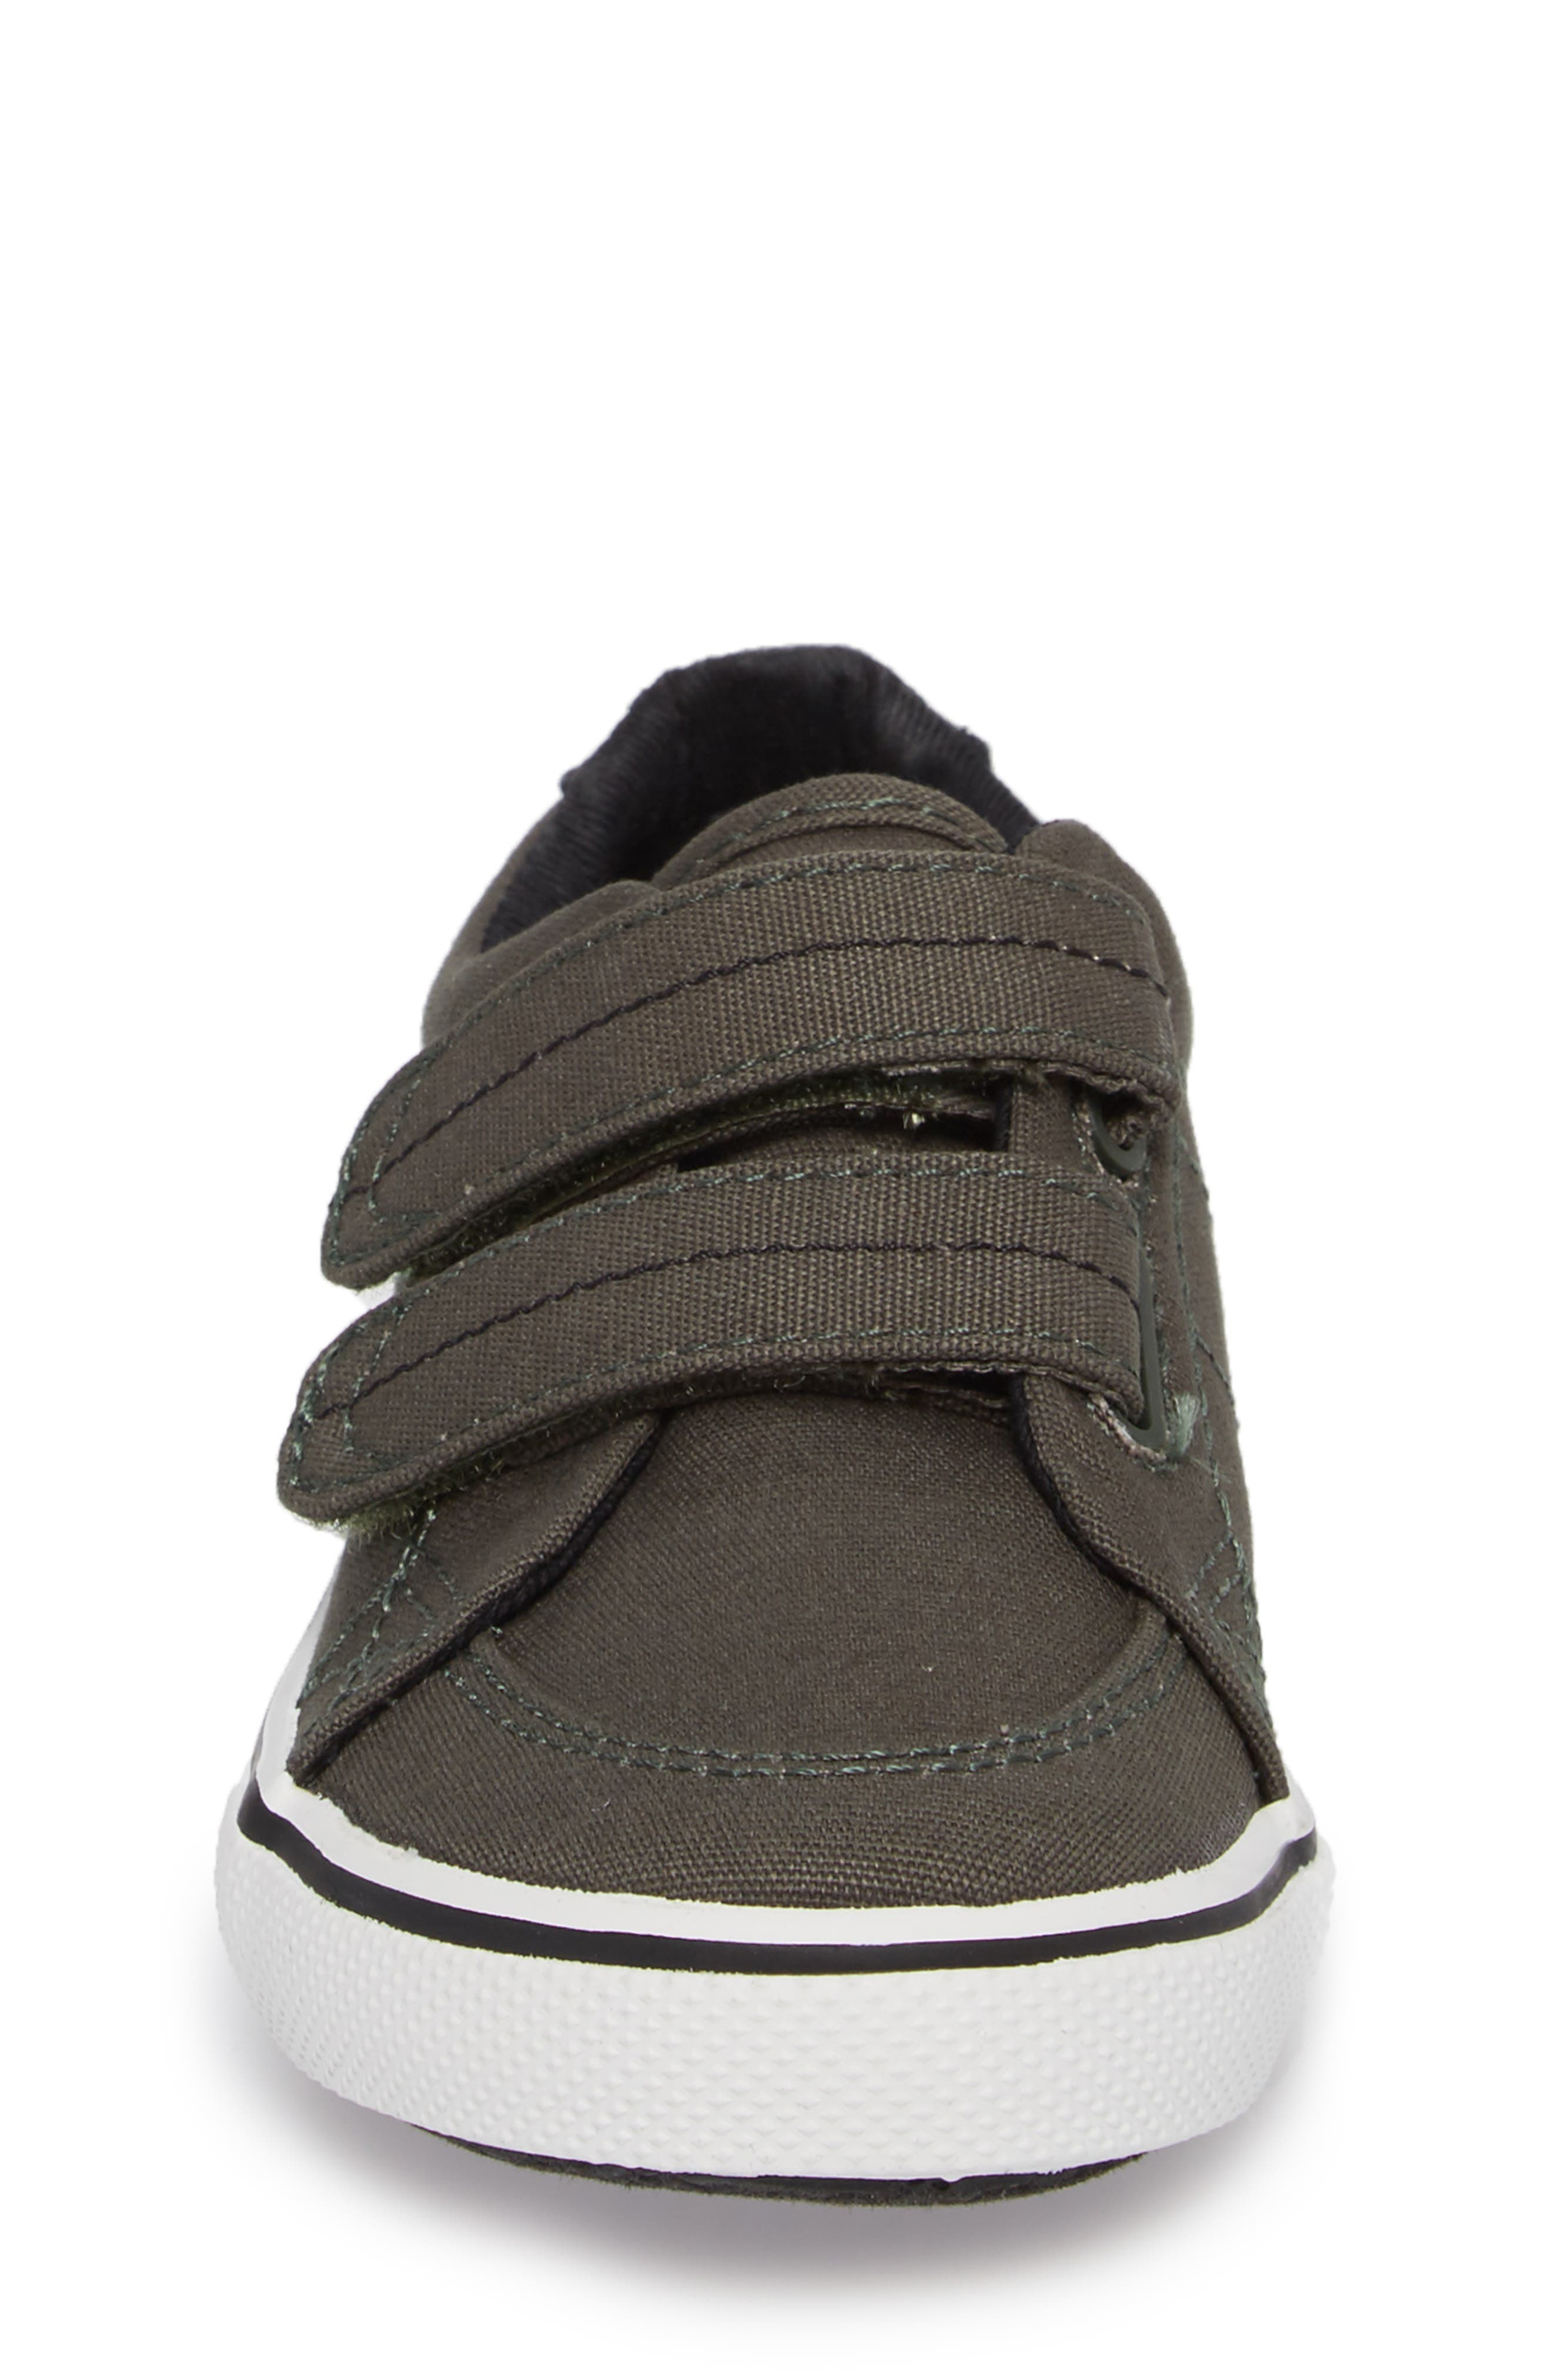 Sperry Top-Sider<sup>®</sup> Kids 'Halyard' Sneaker,                             Alternate thumbnail 4, color,                             Olive